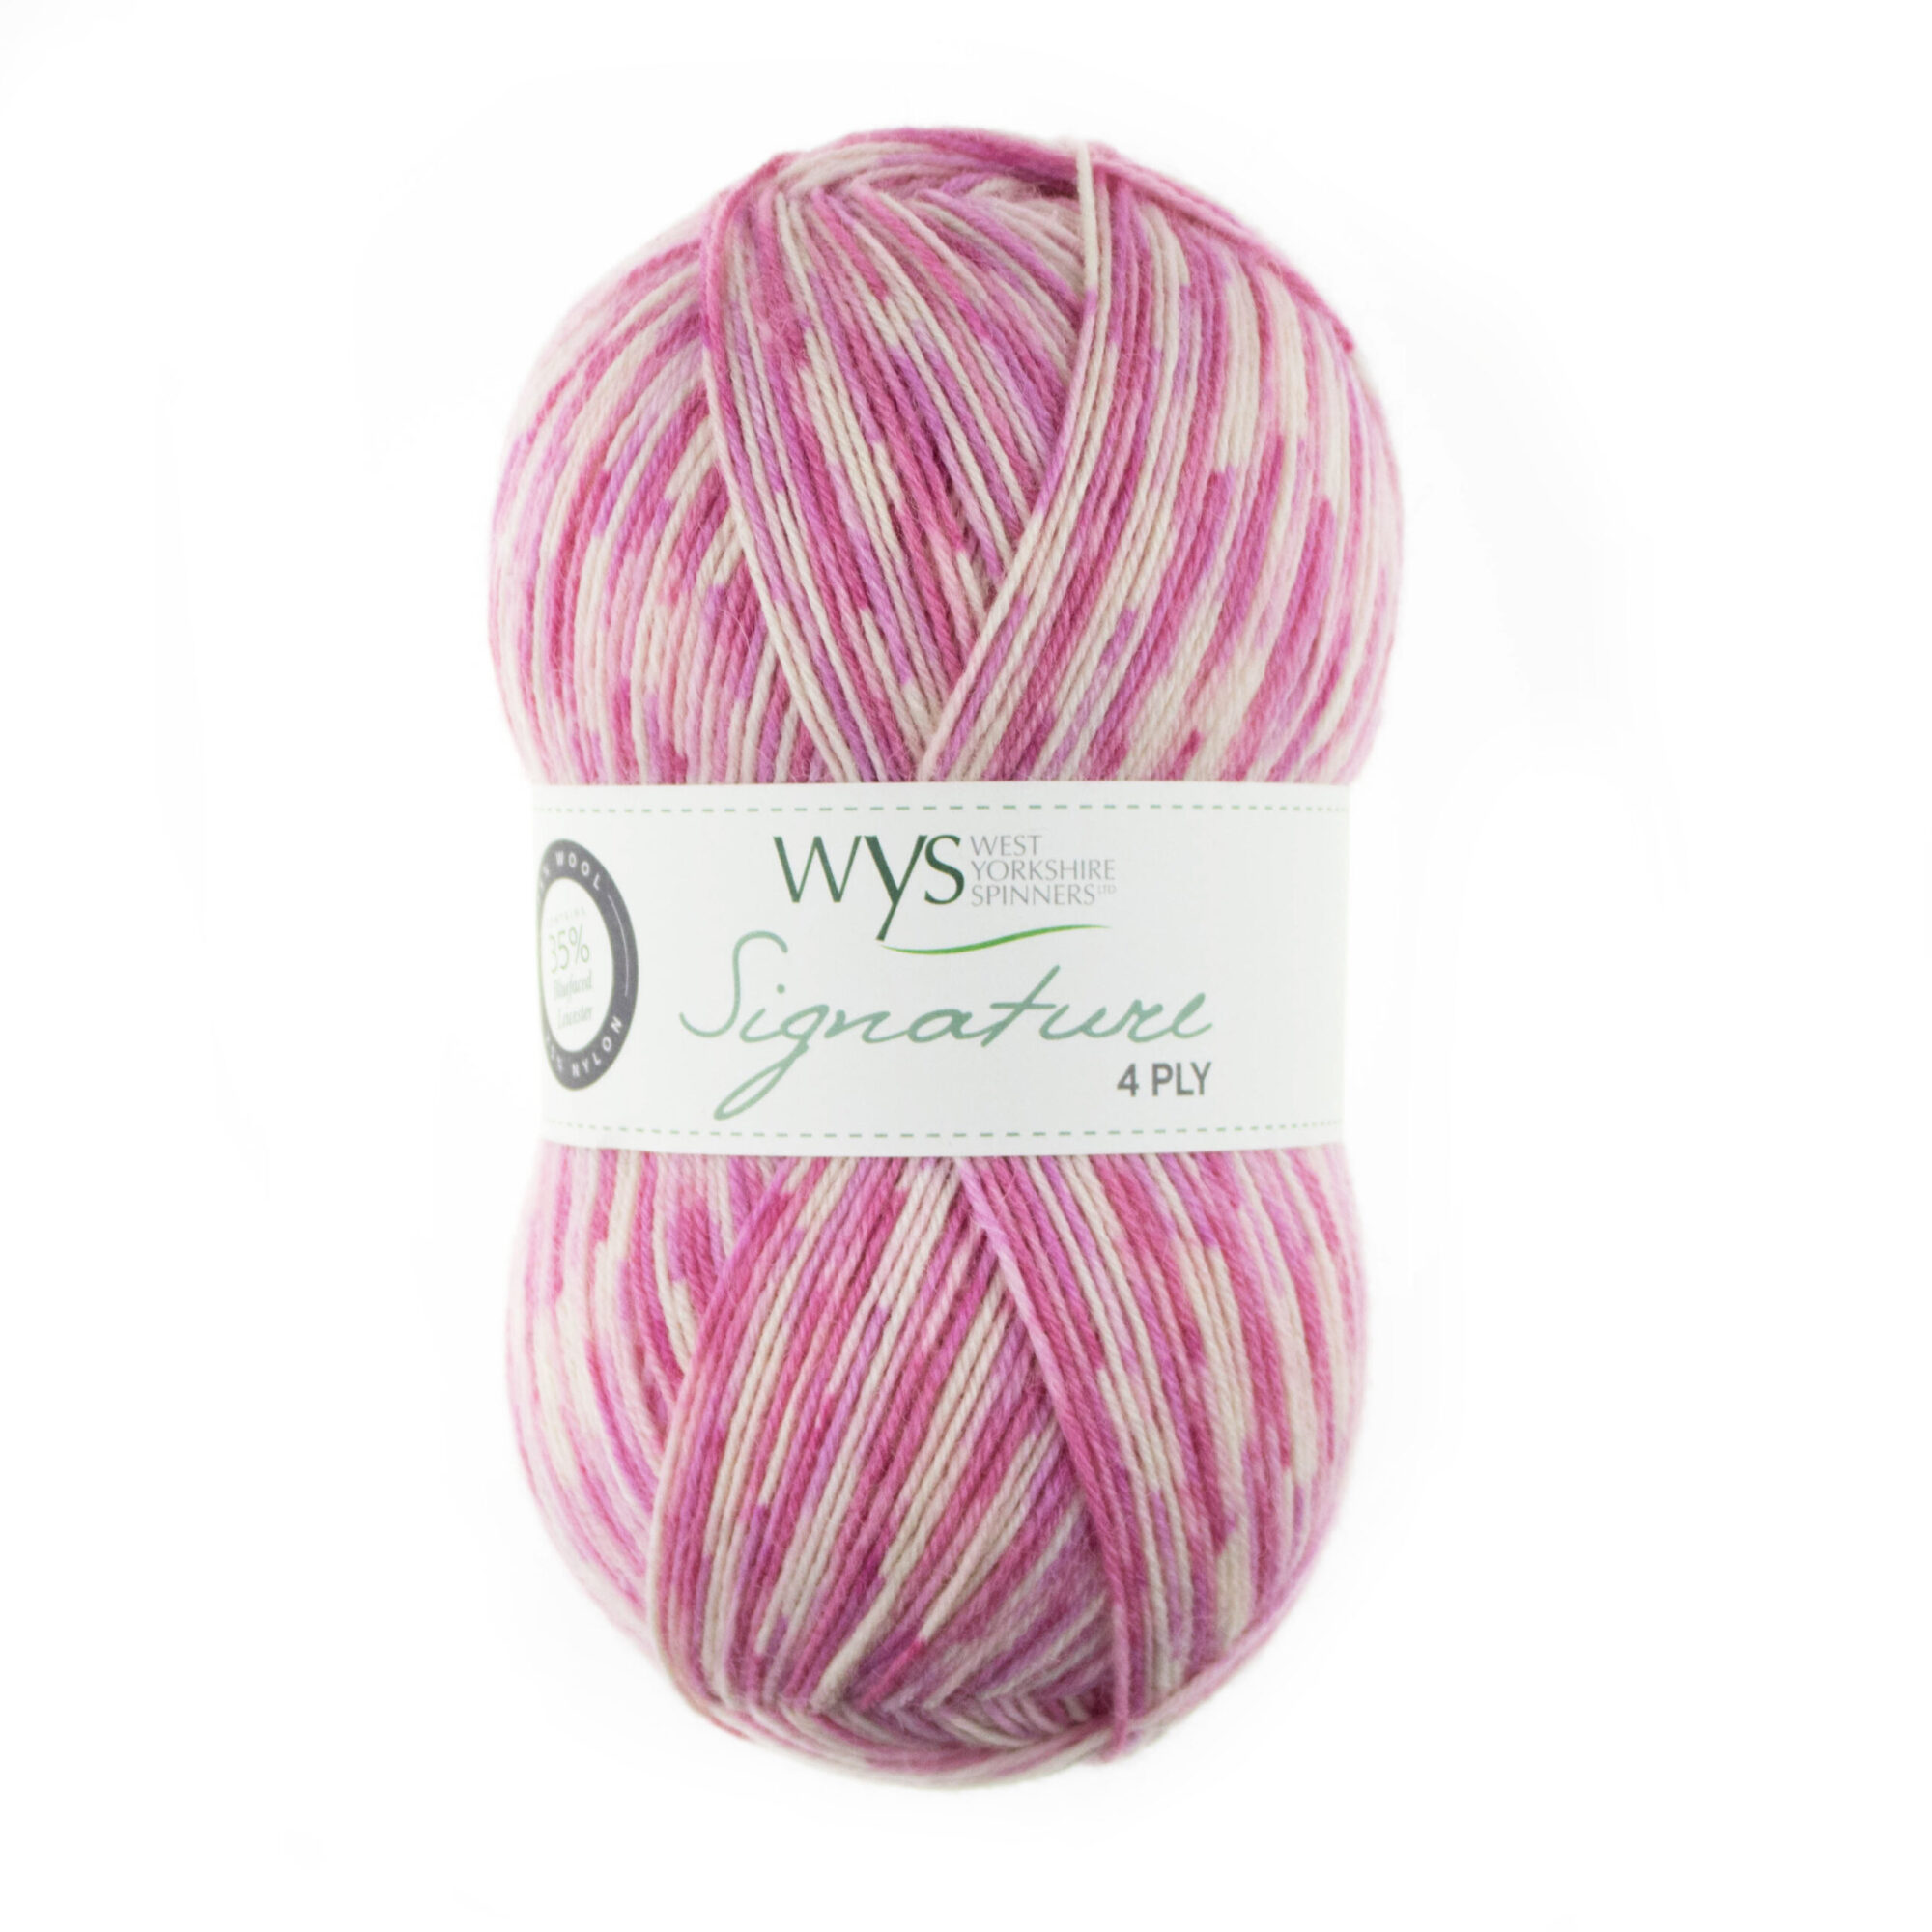 West Yorkshire Spinners Signature 4ply – The Florist Collection product image